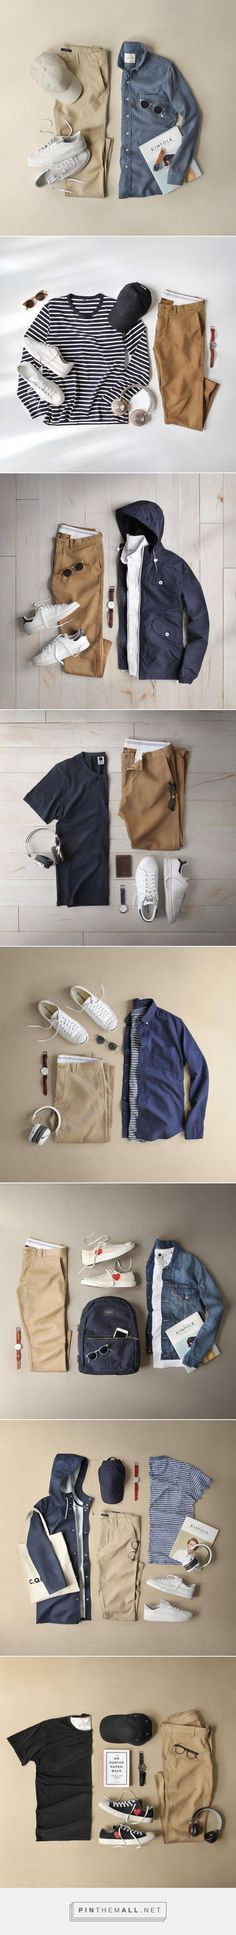 How to wear kahki chinos? see how you can khaki chinos like a fashion blogger. #mens #fashion @blogger #MensFashionSwag